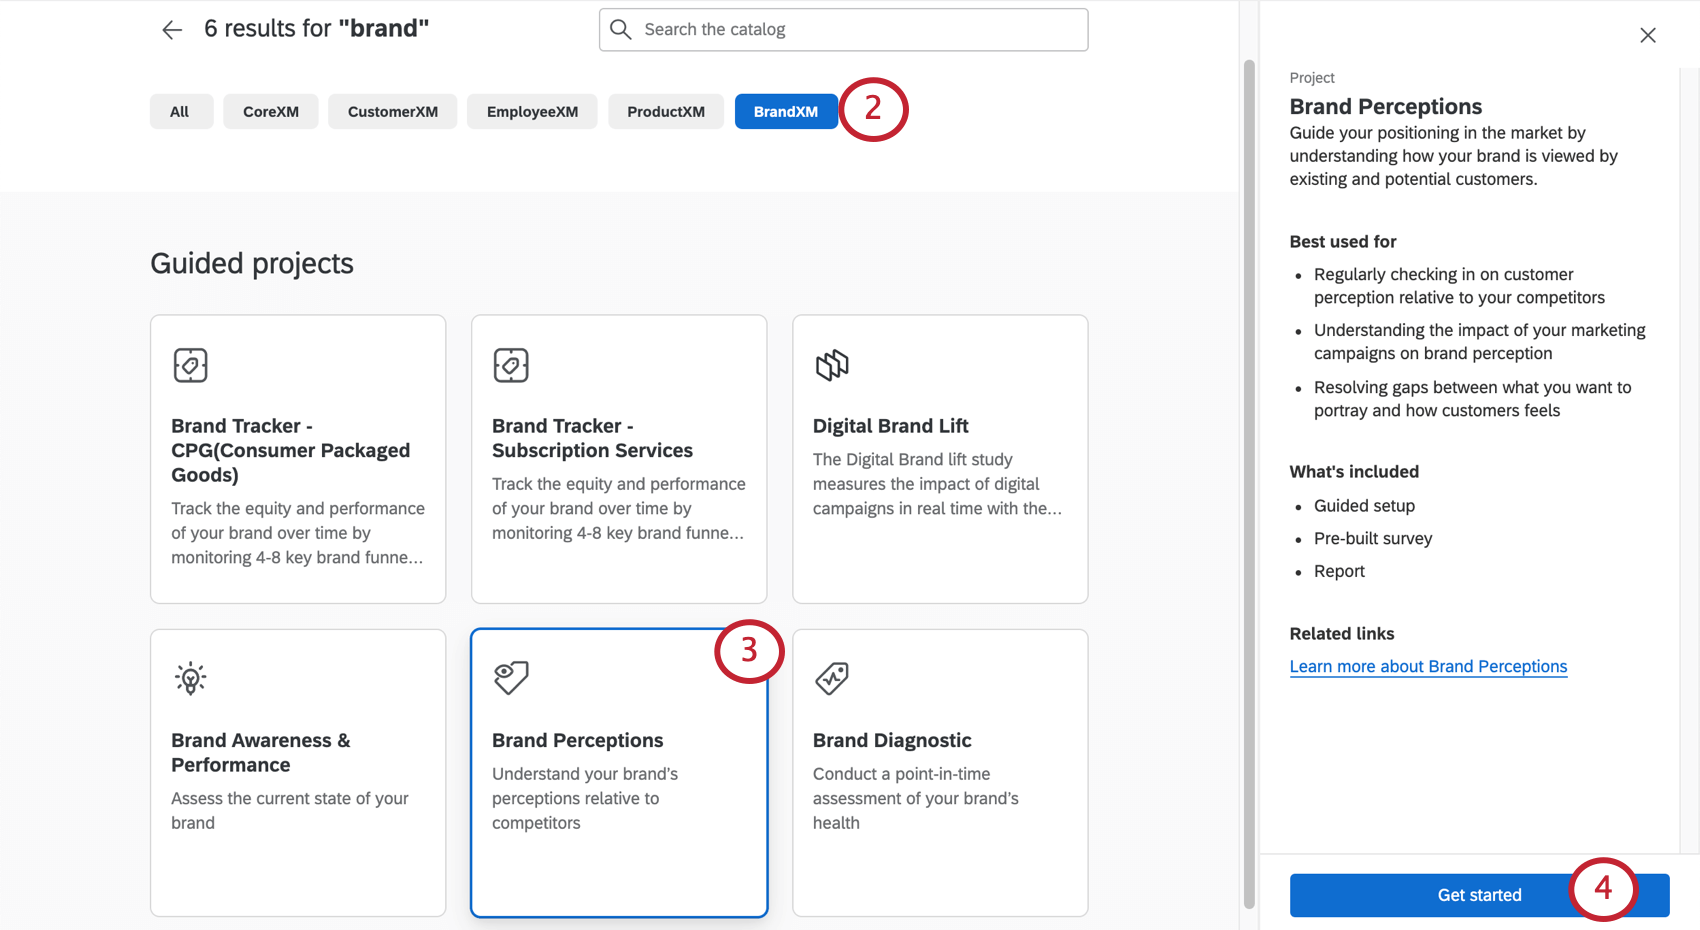 Brand selected along the top, several brand project tiles listed, when one is clicked a menu with more info appears to the right